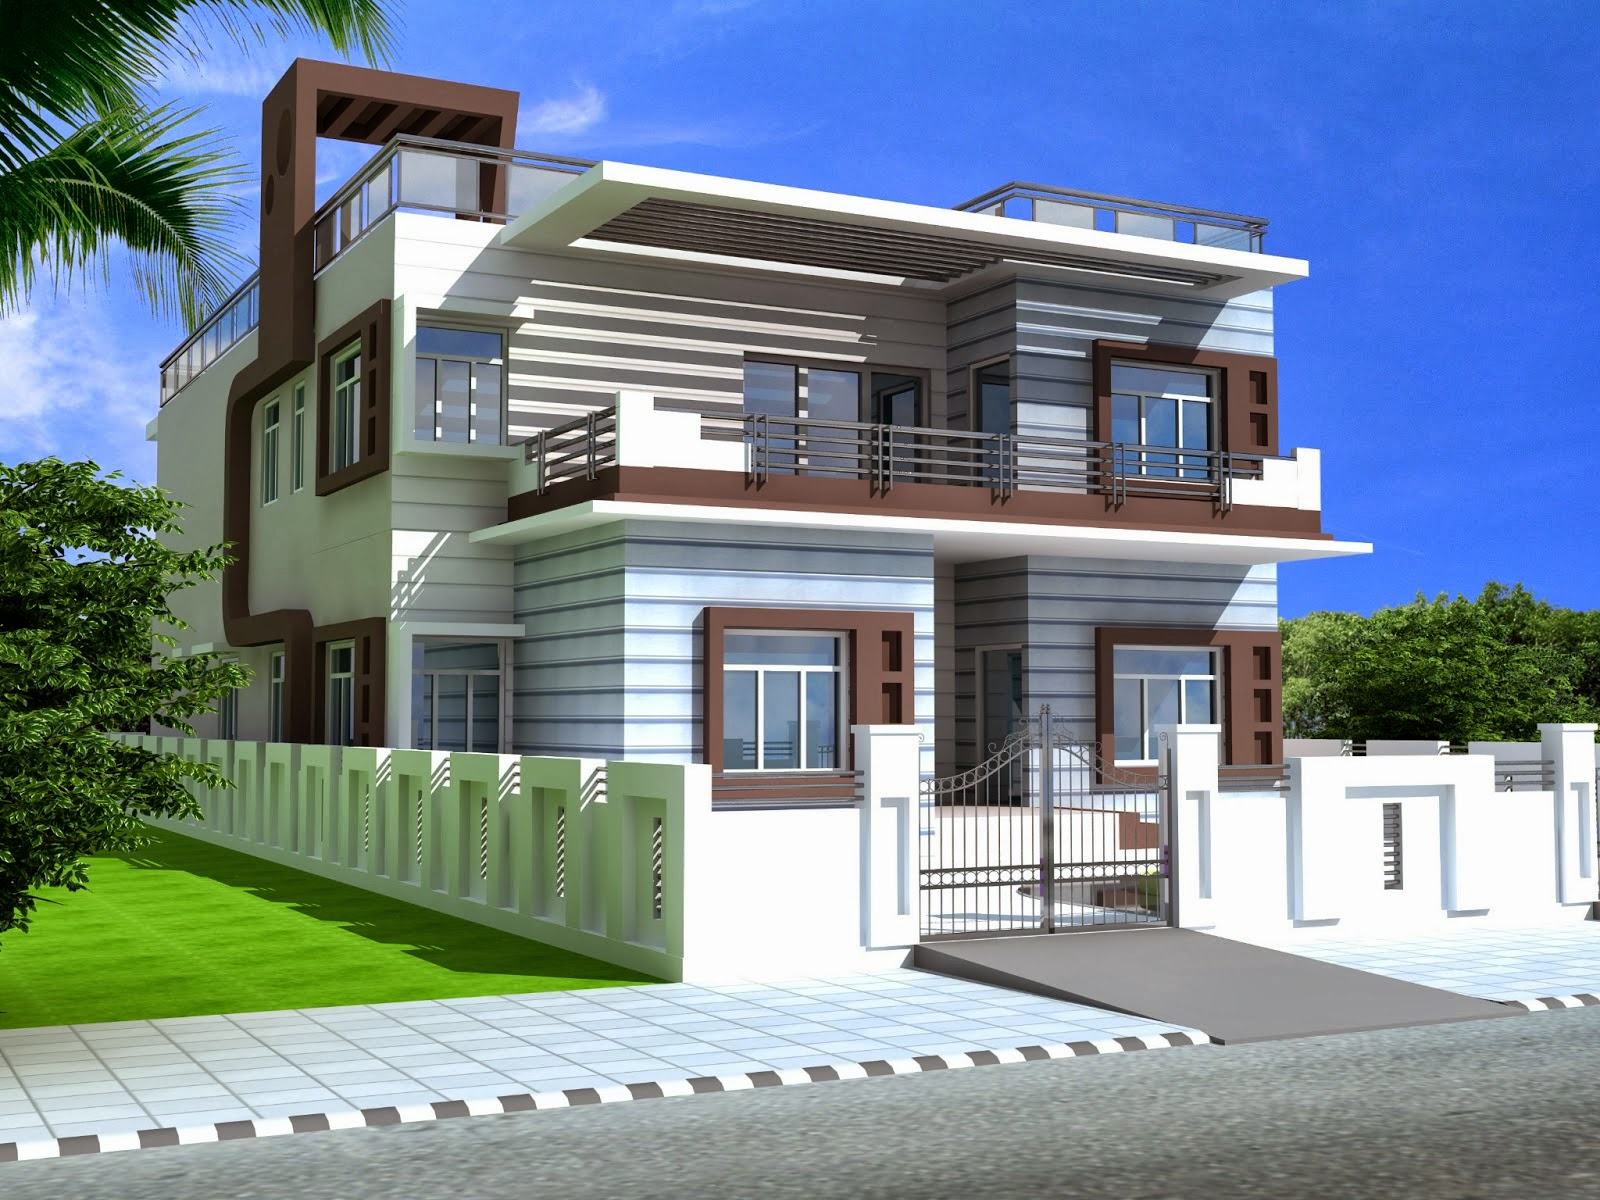 Foundation dezin decor duplex homes 3ds max work for Duplex home plan design